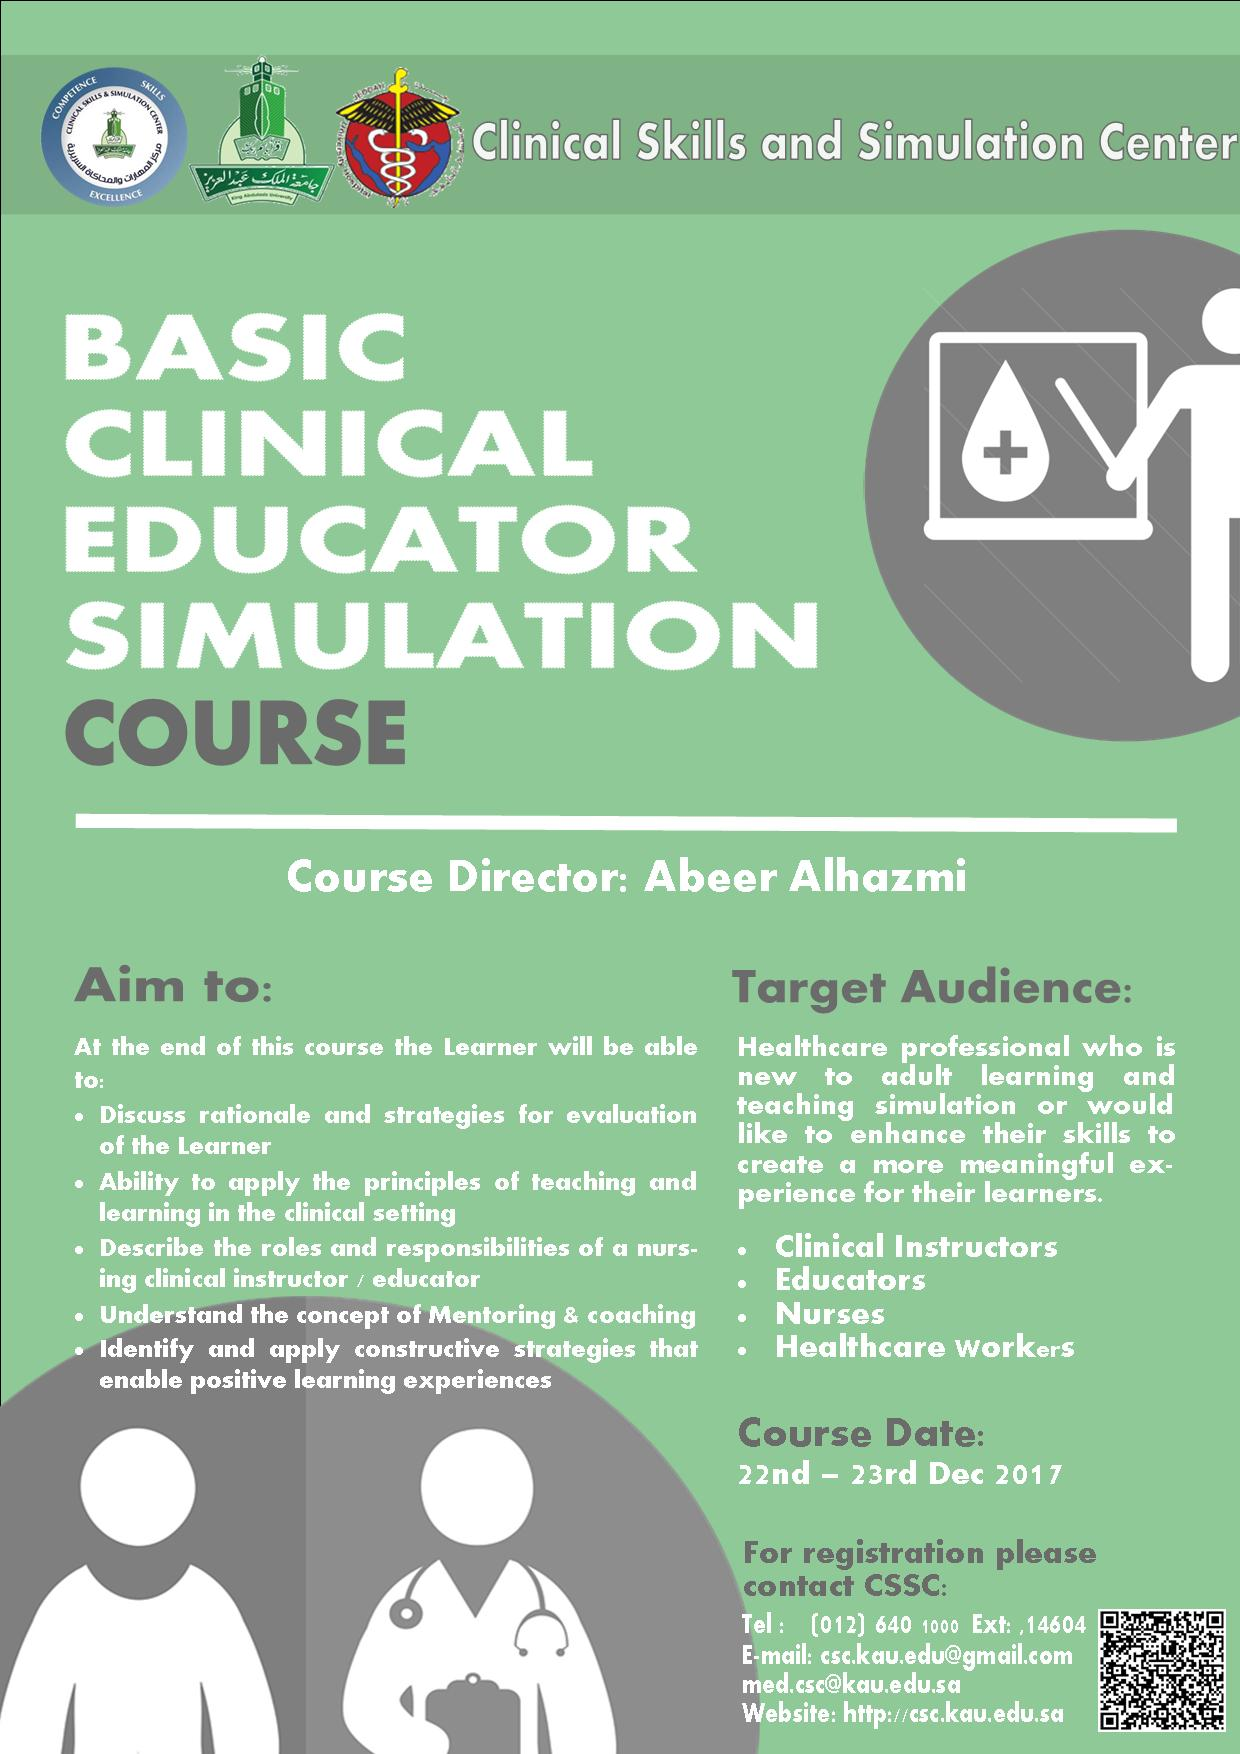 Clinical Skills Center - Basic Clinical Educator Simulation Course